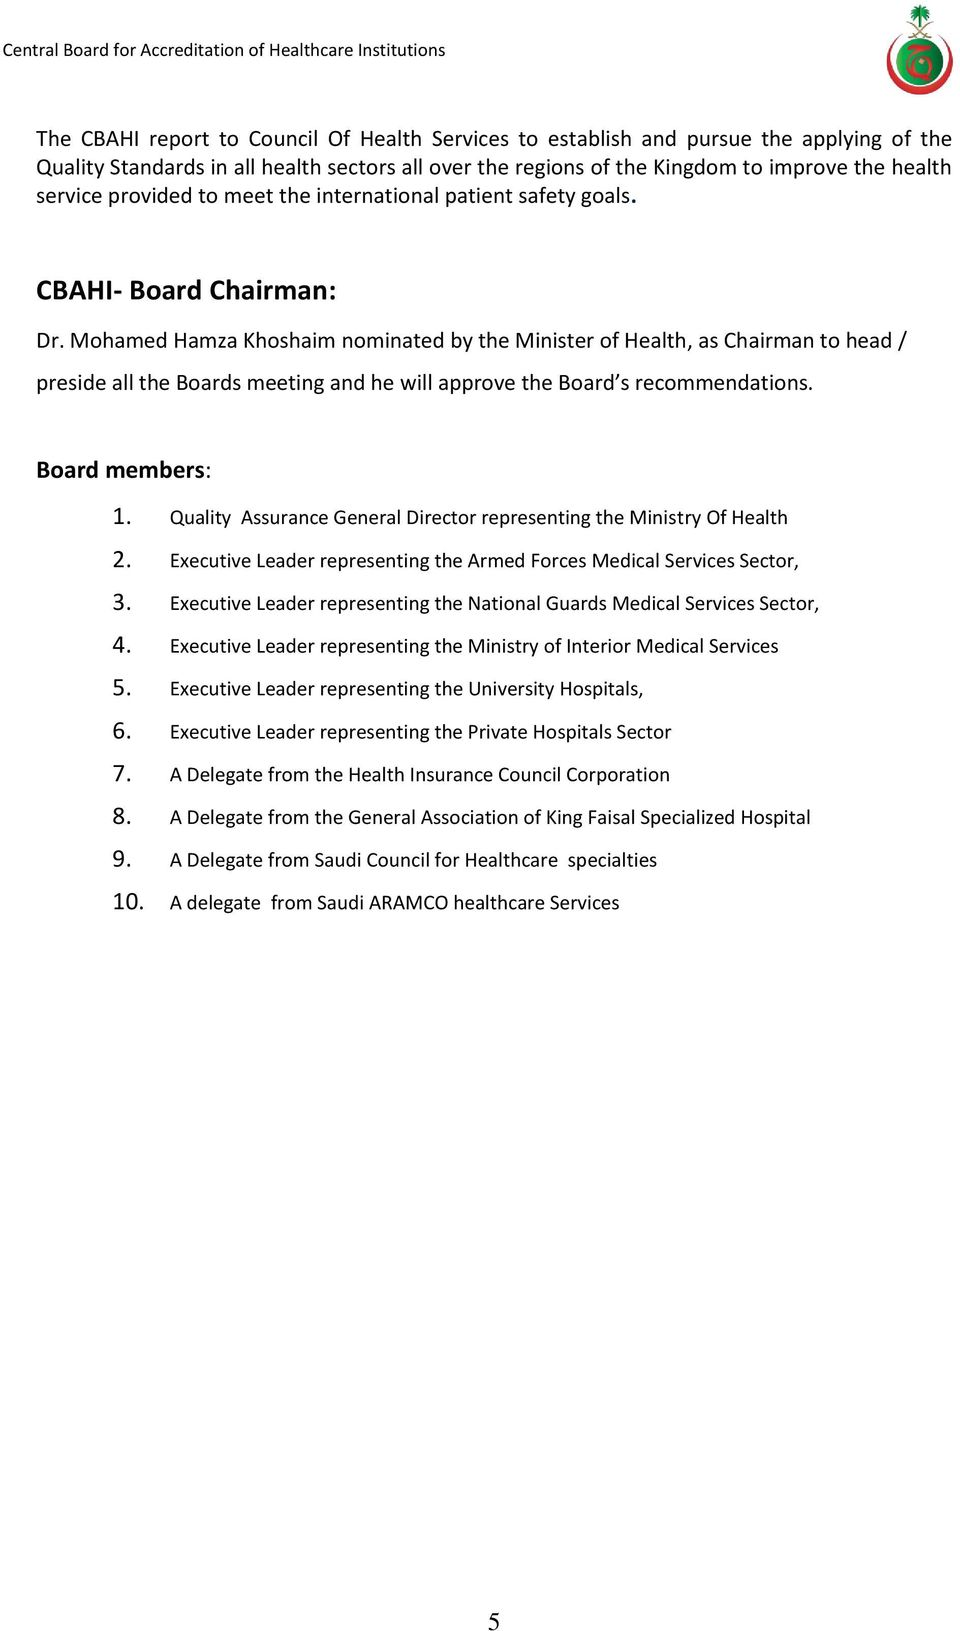 Mohamed Hamza Khoshaim nominated by the Minister of Health, as Chairman to  head / preside